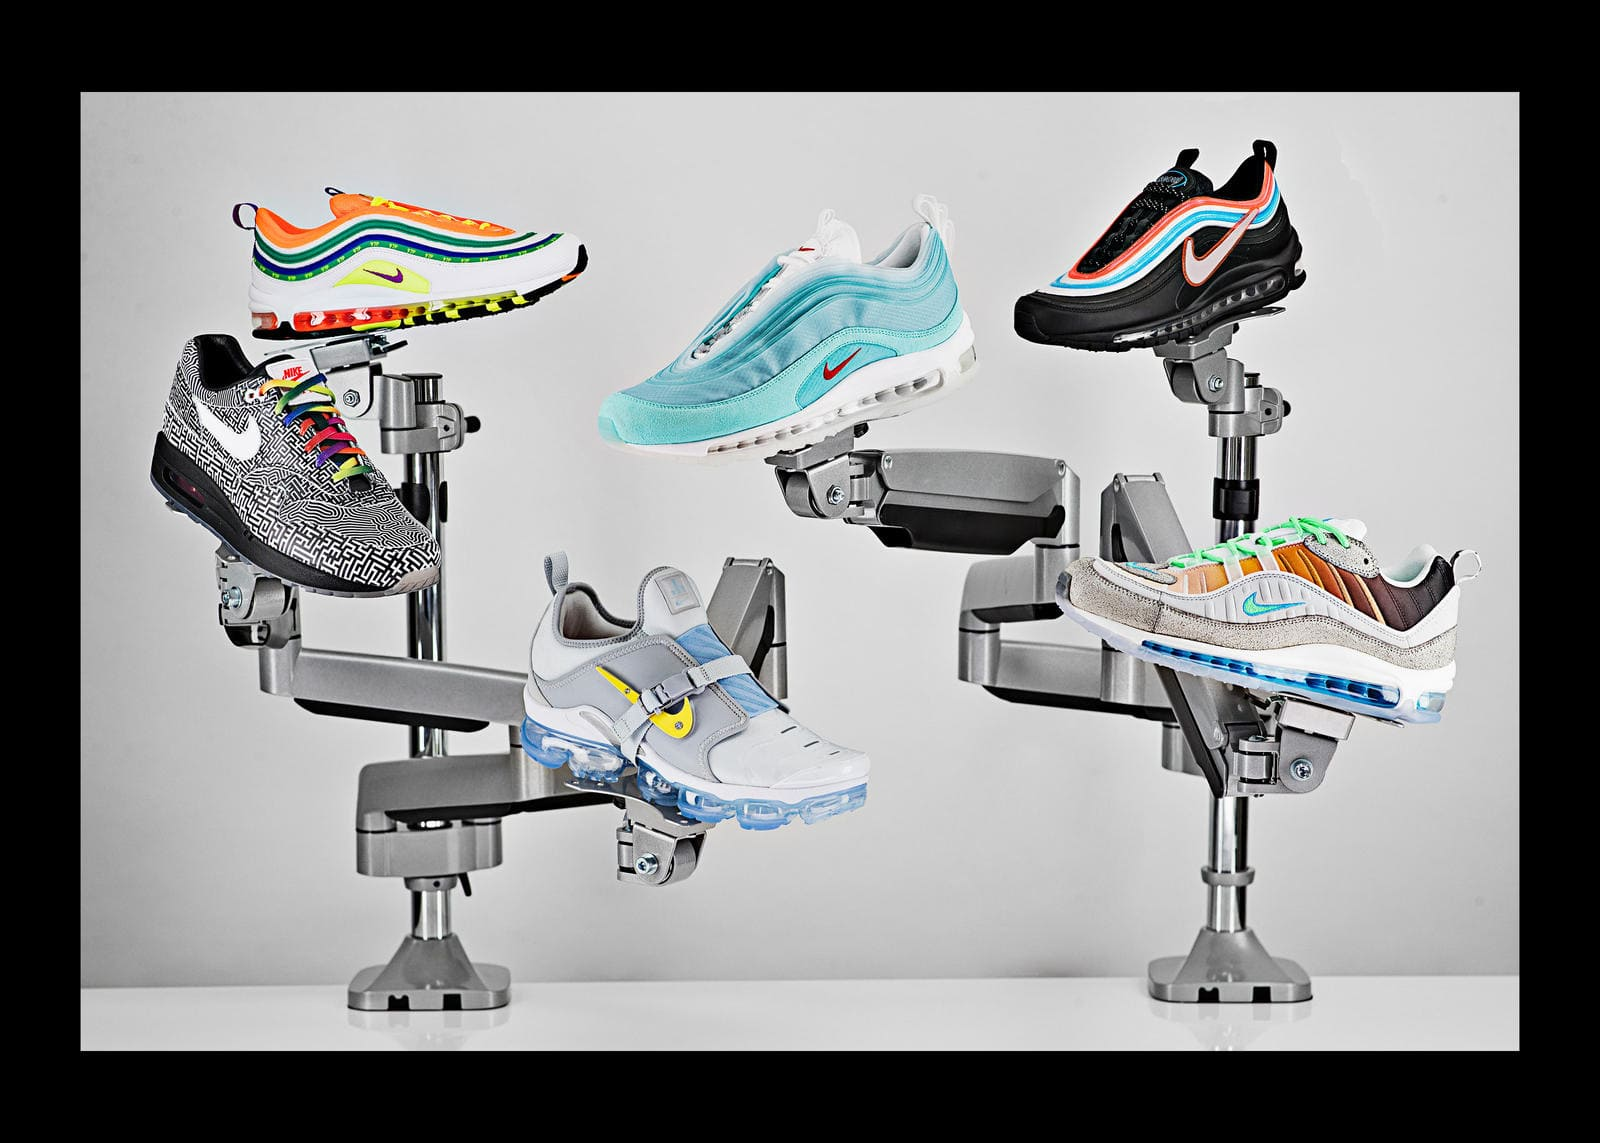 Nike-On-Air-2018-finale-winner-designs